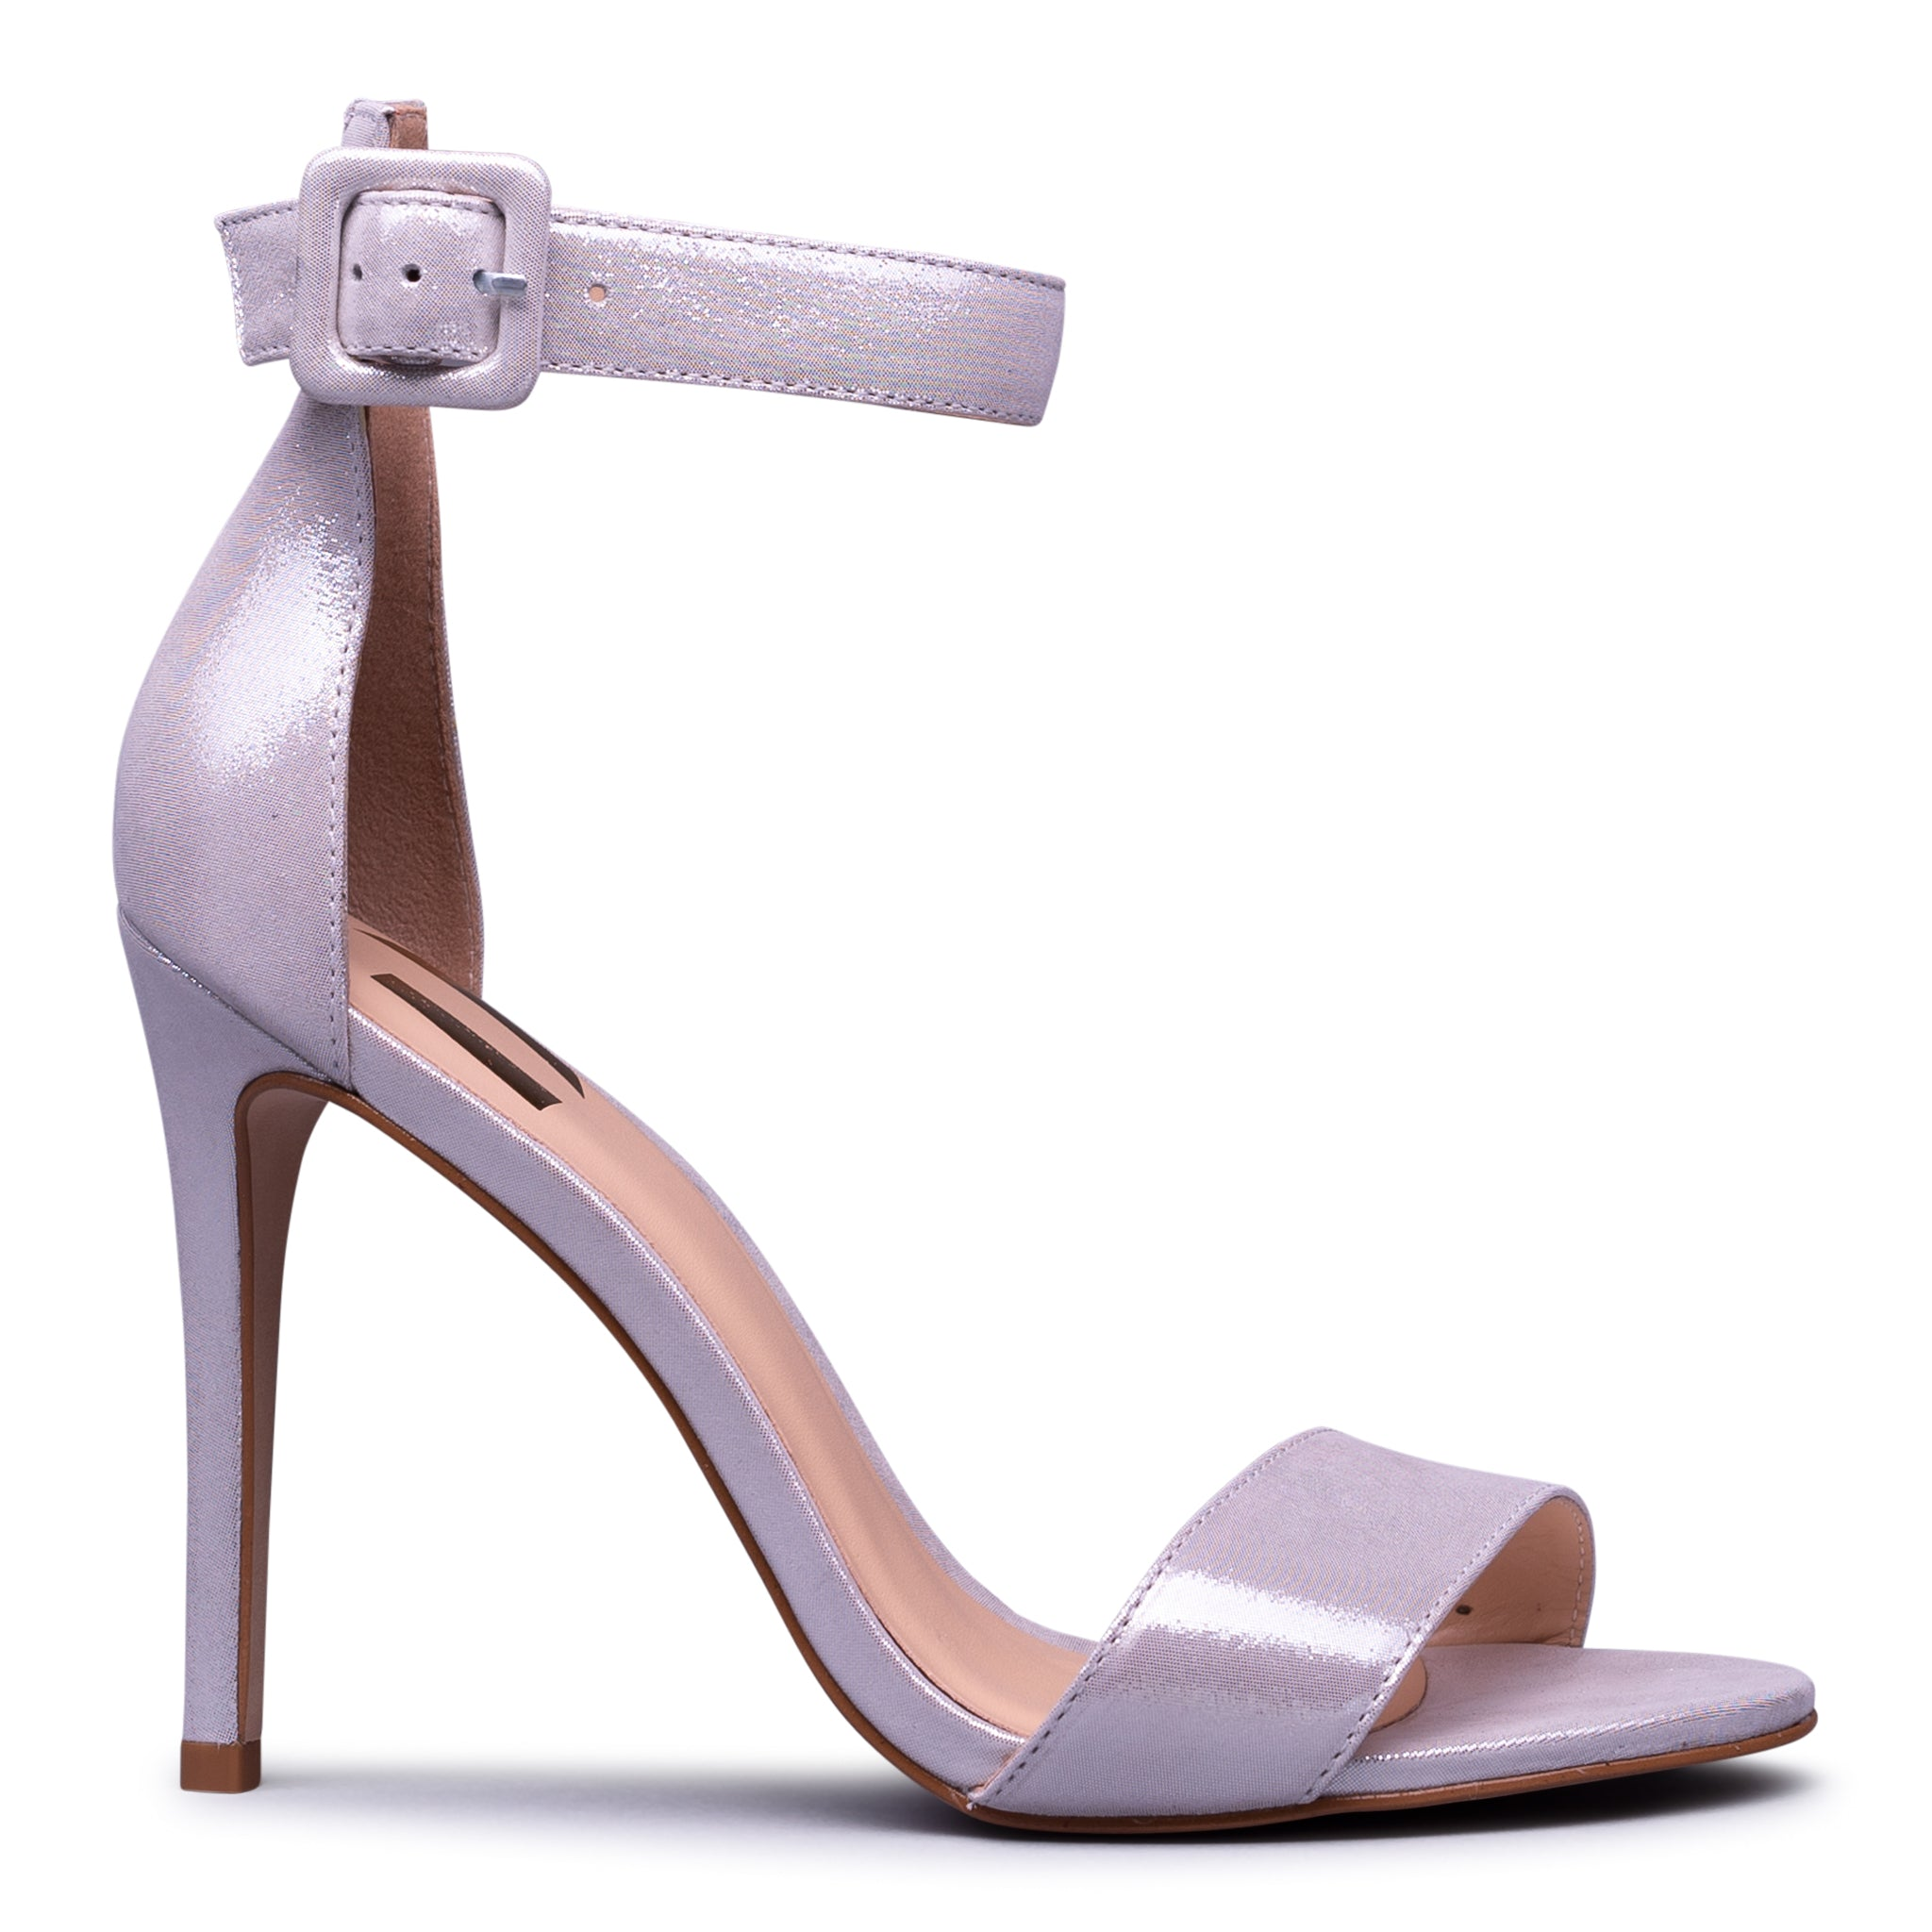 Silver Leather Stiletto Heel Sandal with ankle strap